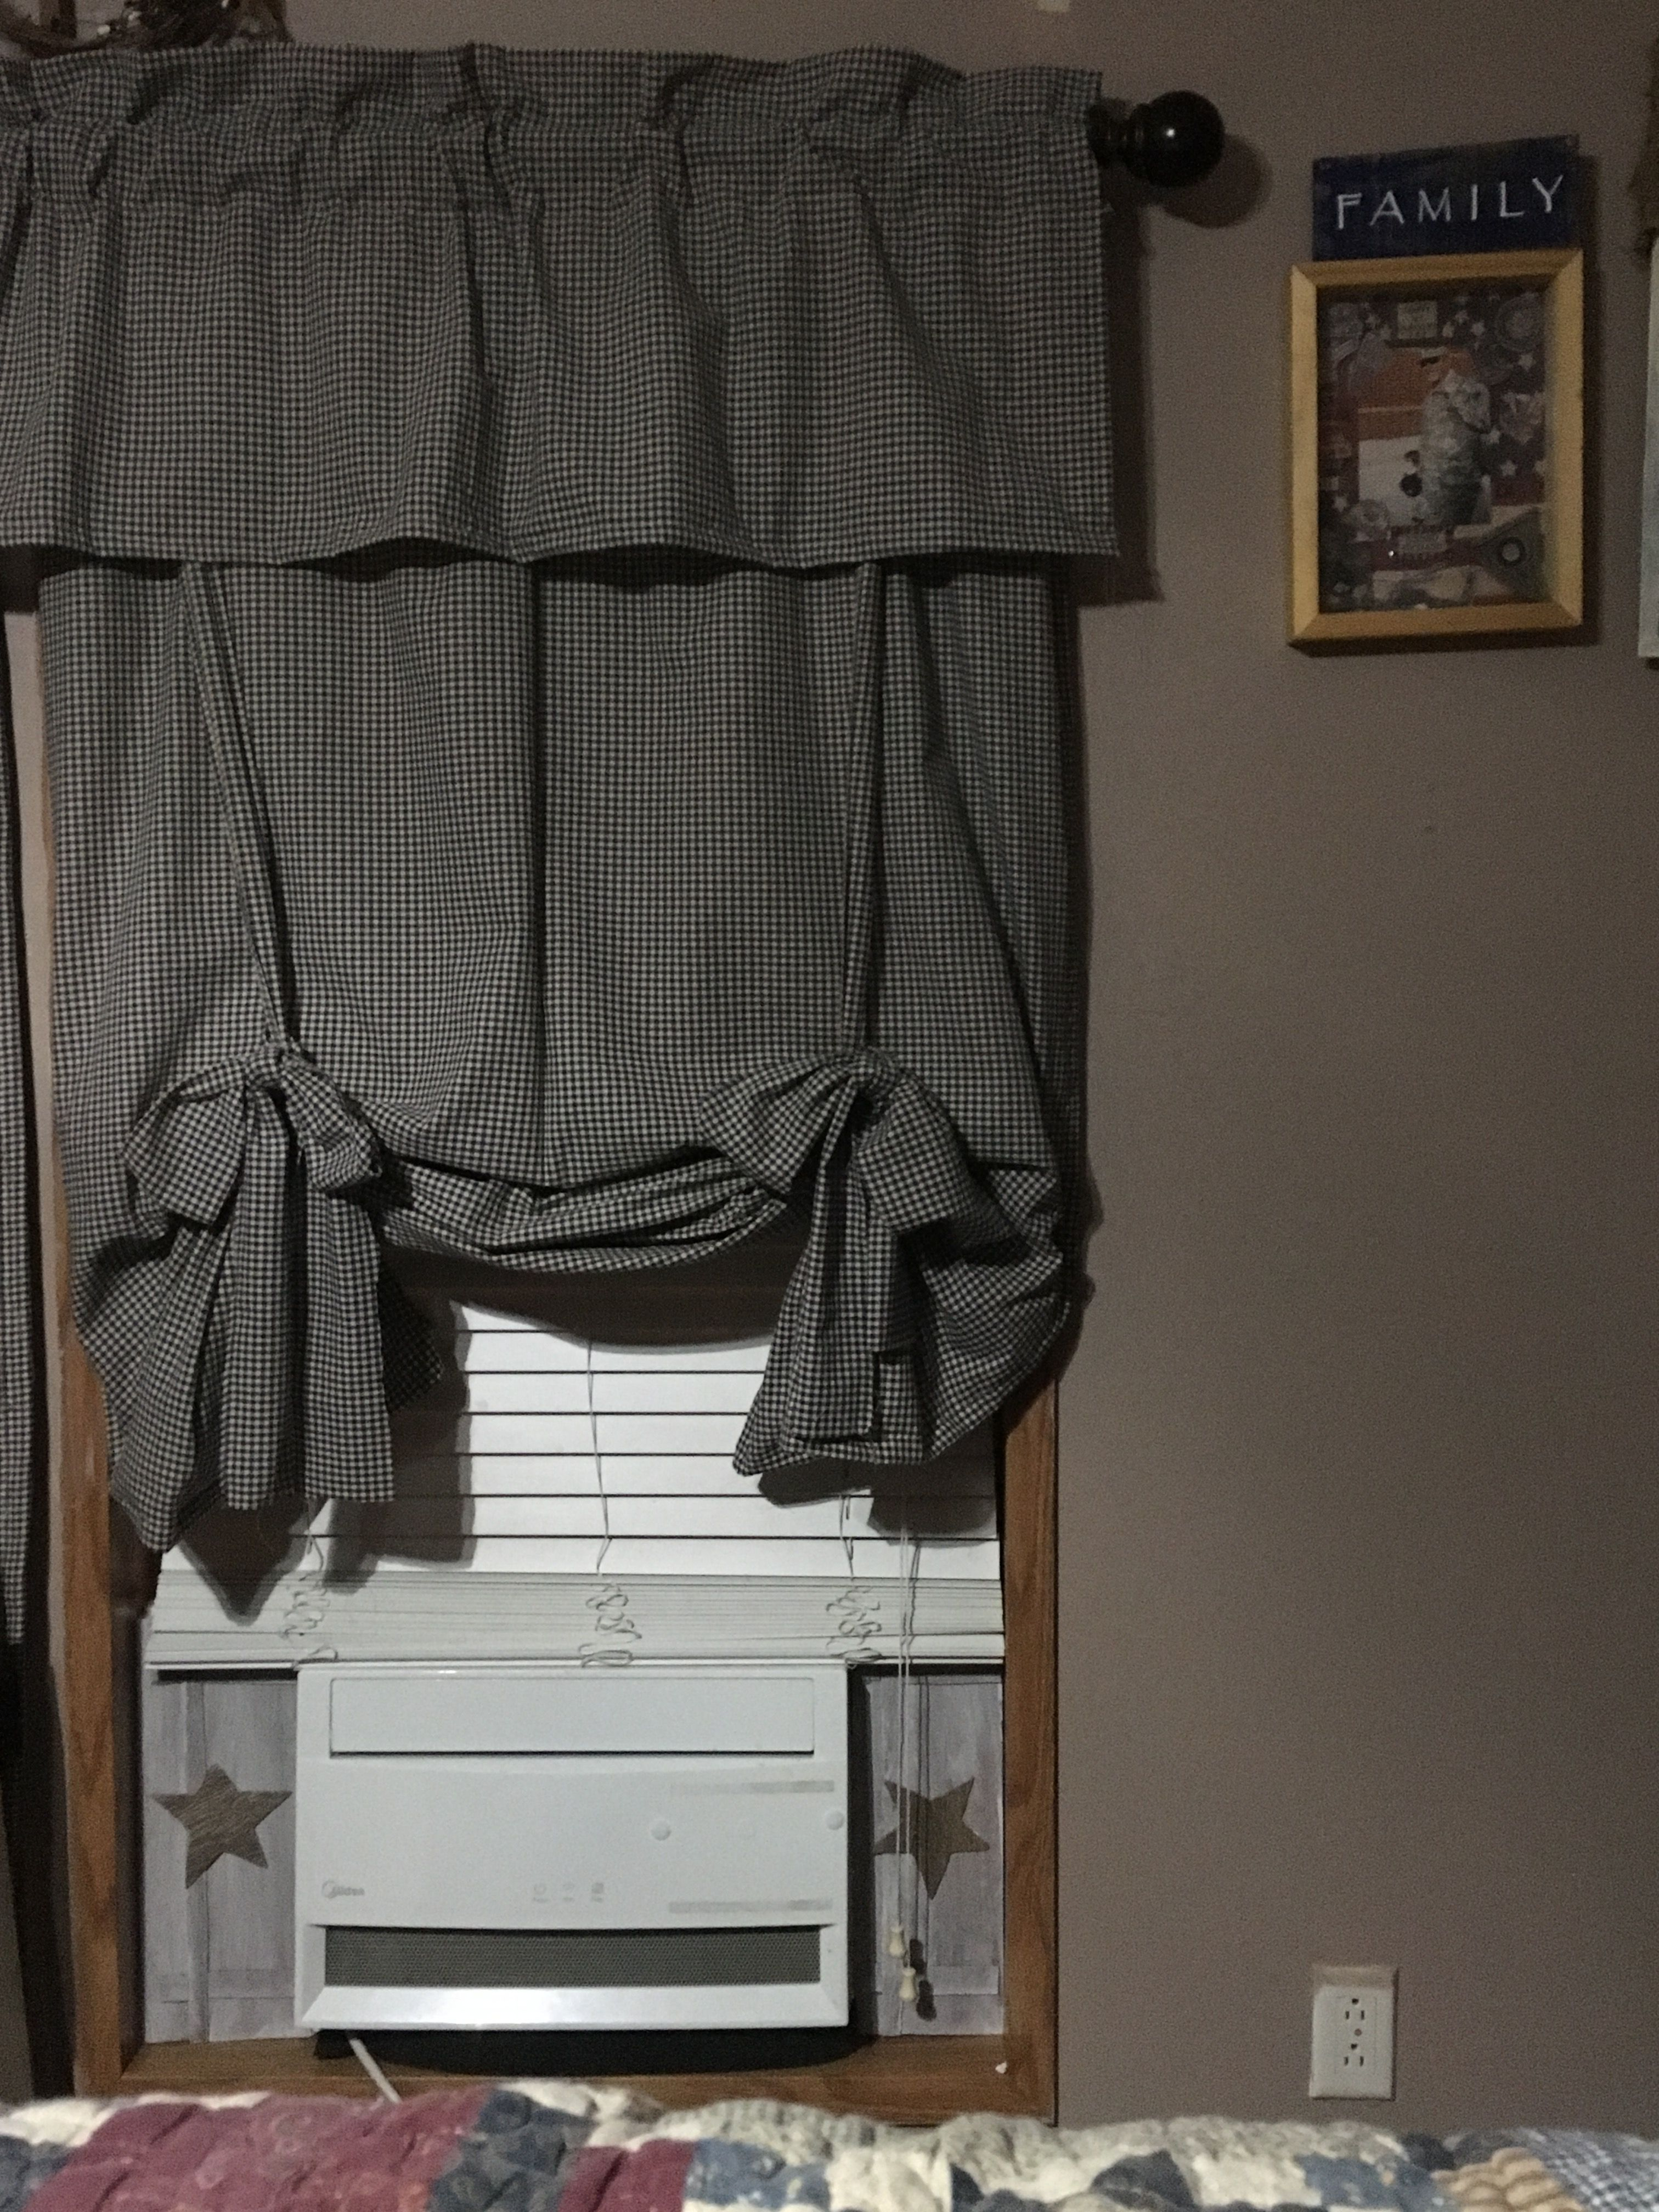 Diy Primitive Curtains Made From Homespun And Diy Faux Shutters To Help Take Ugliest Away Primitive Curtains Primitive Decorating Country Primitive Decorating